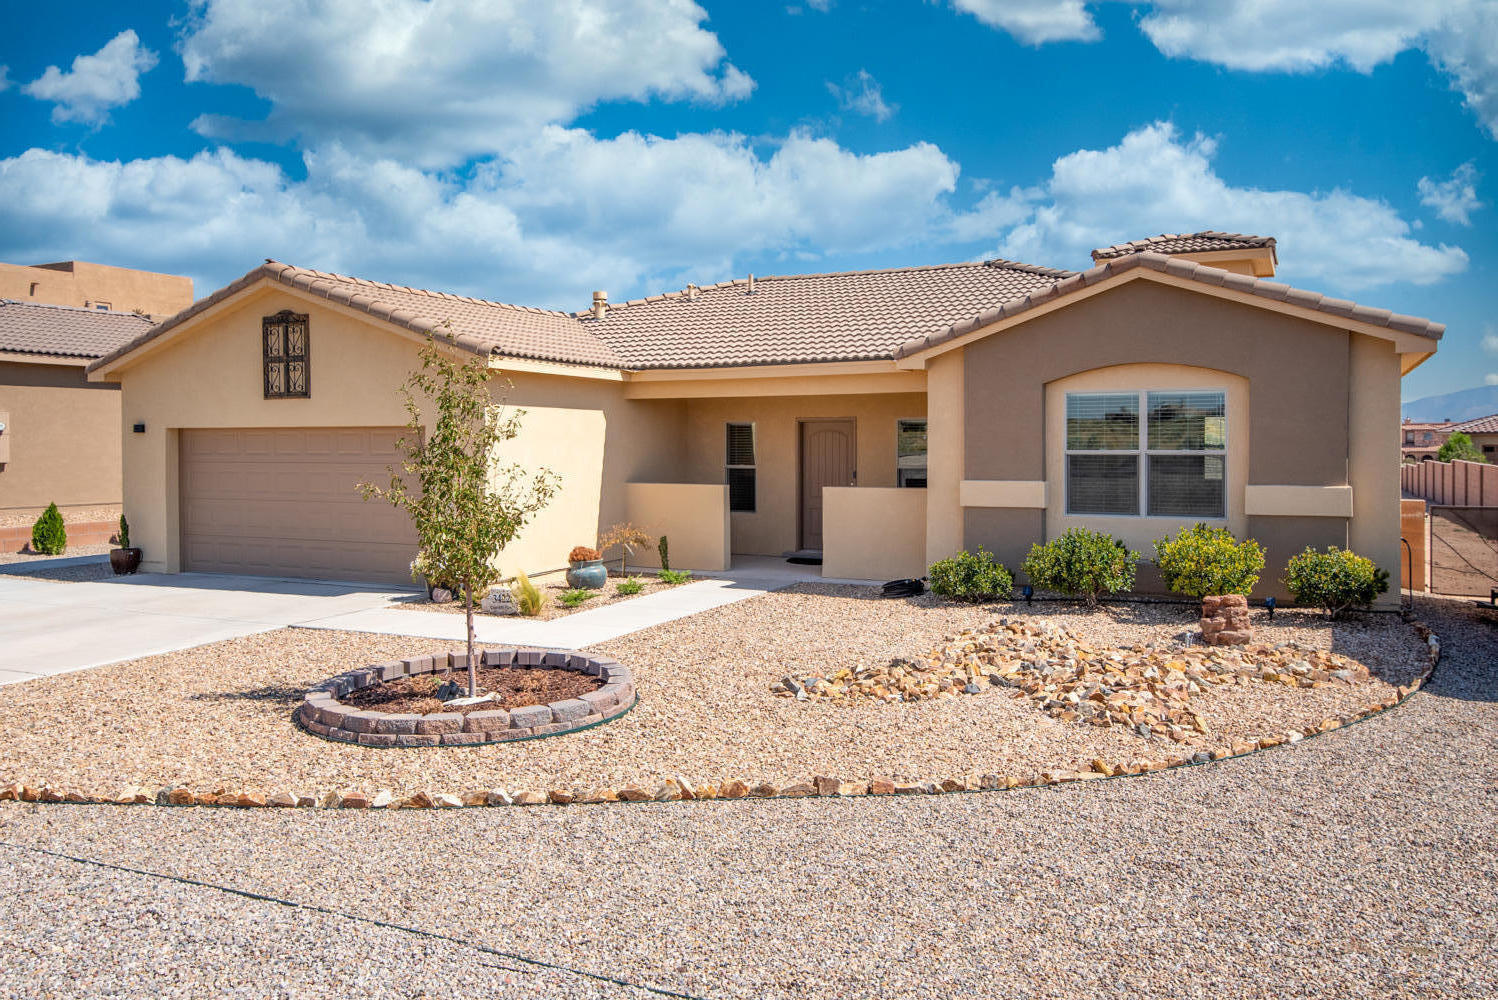 Beautiful well maintained 3BR 2BA Spacious open floor plan, kitchen boasts of new stainless appliances, granite countertops, large island, custom Sky Chase skylight,. Enjoy stunning views of the Sandia Mountains from backyard. This and more on 0.50 acre lot!